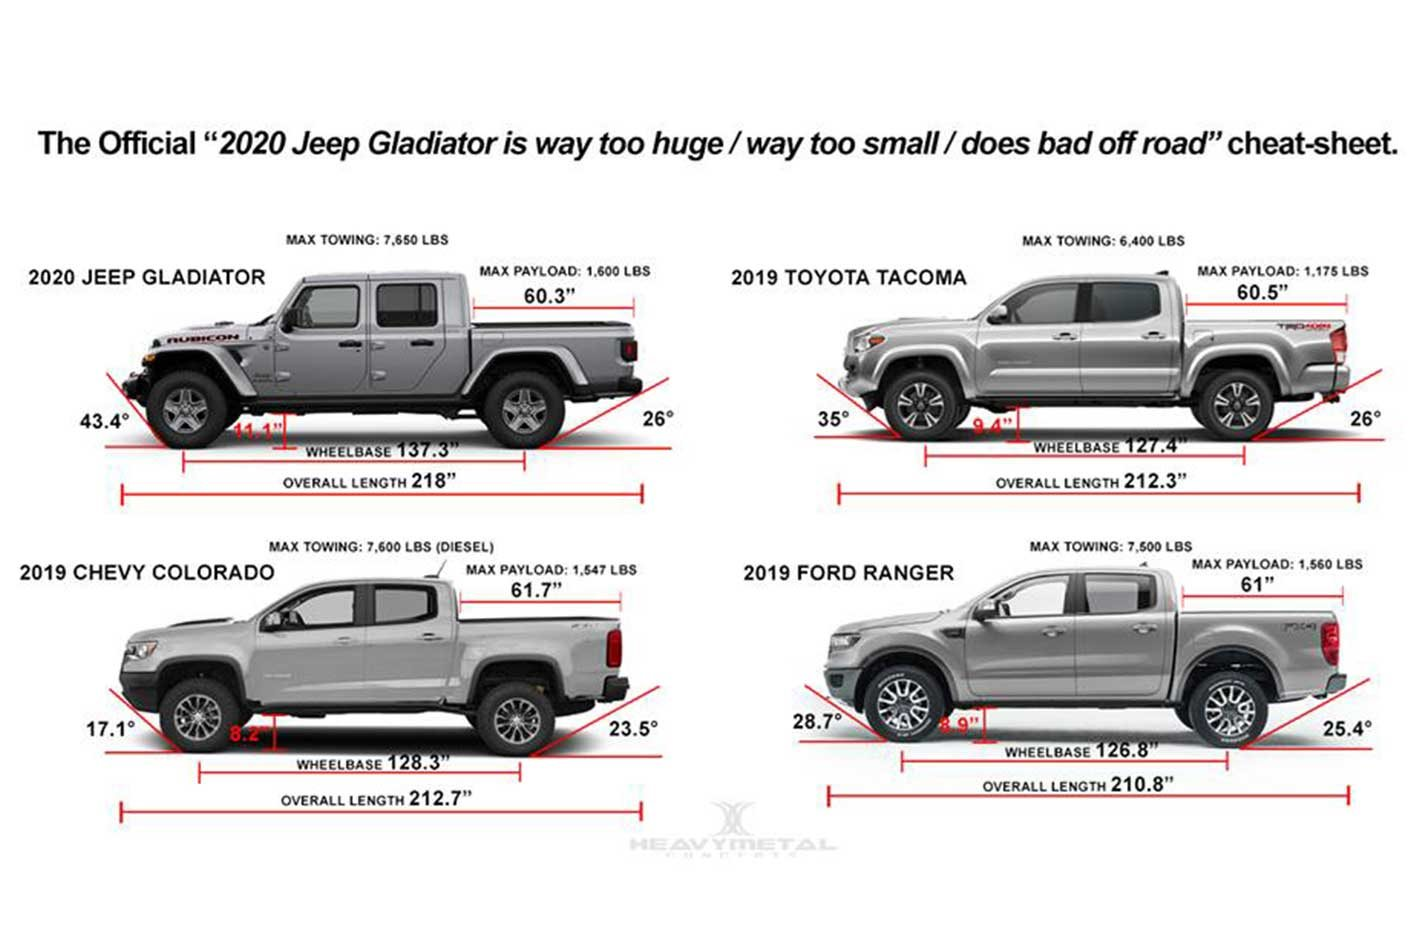 2020 Jeep Gladiator Size Comparison Chart